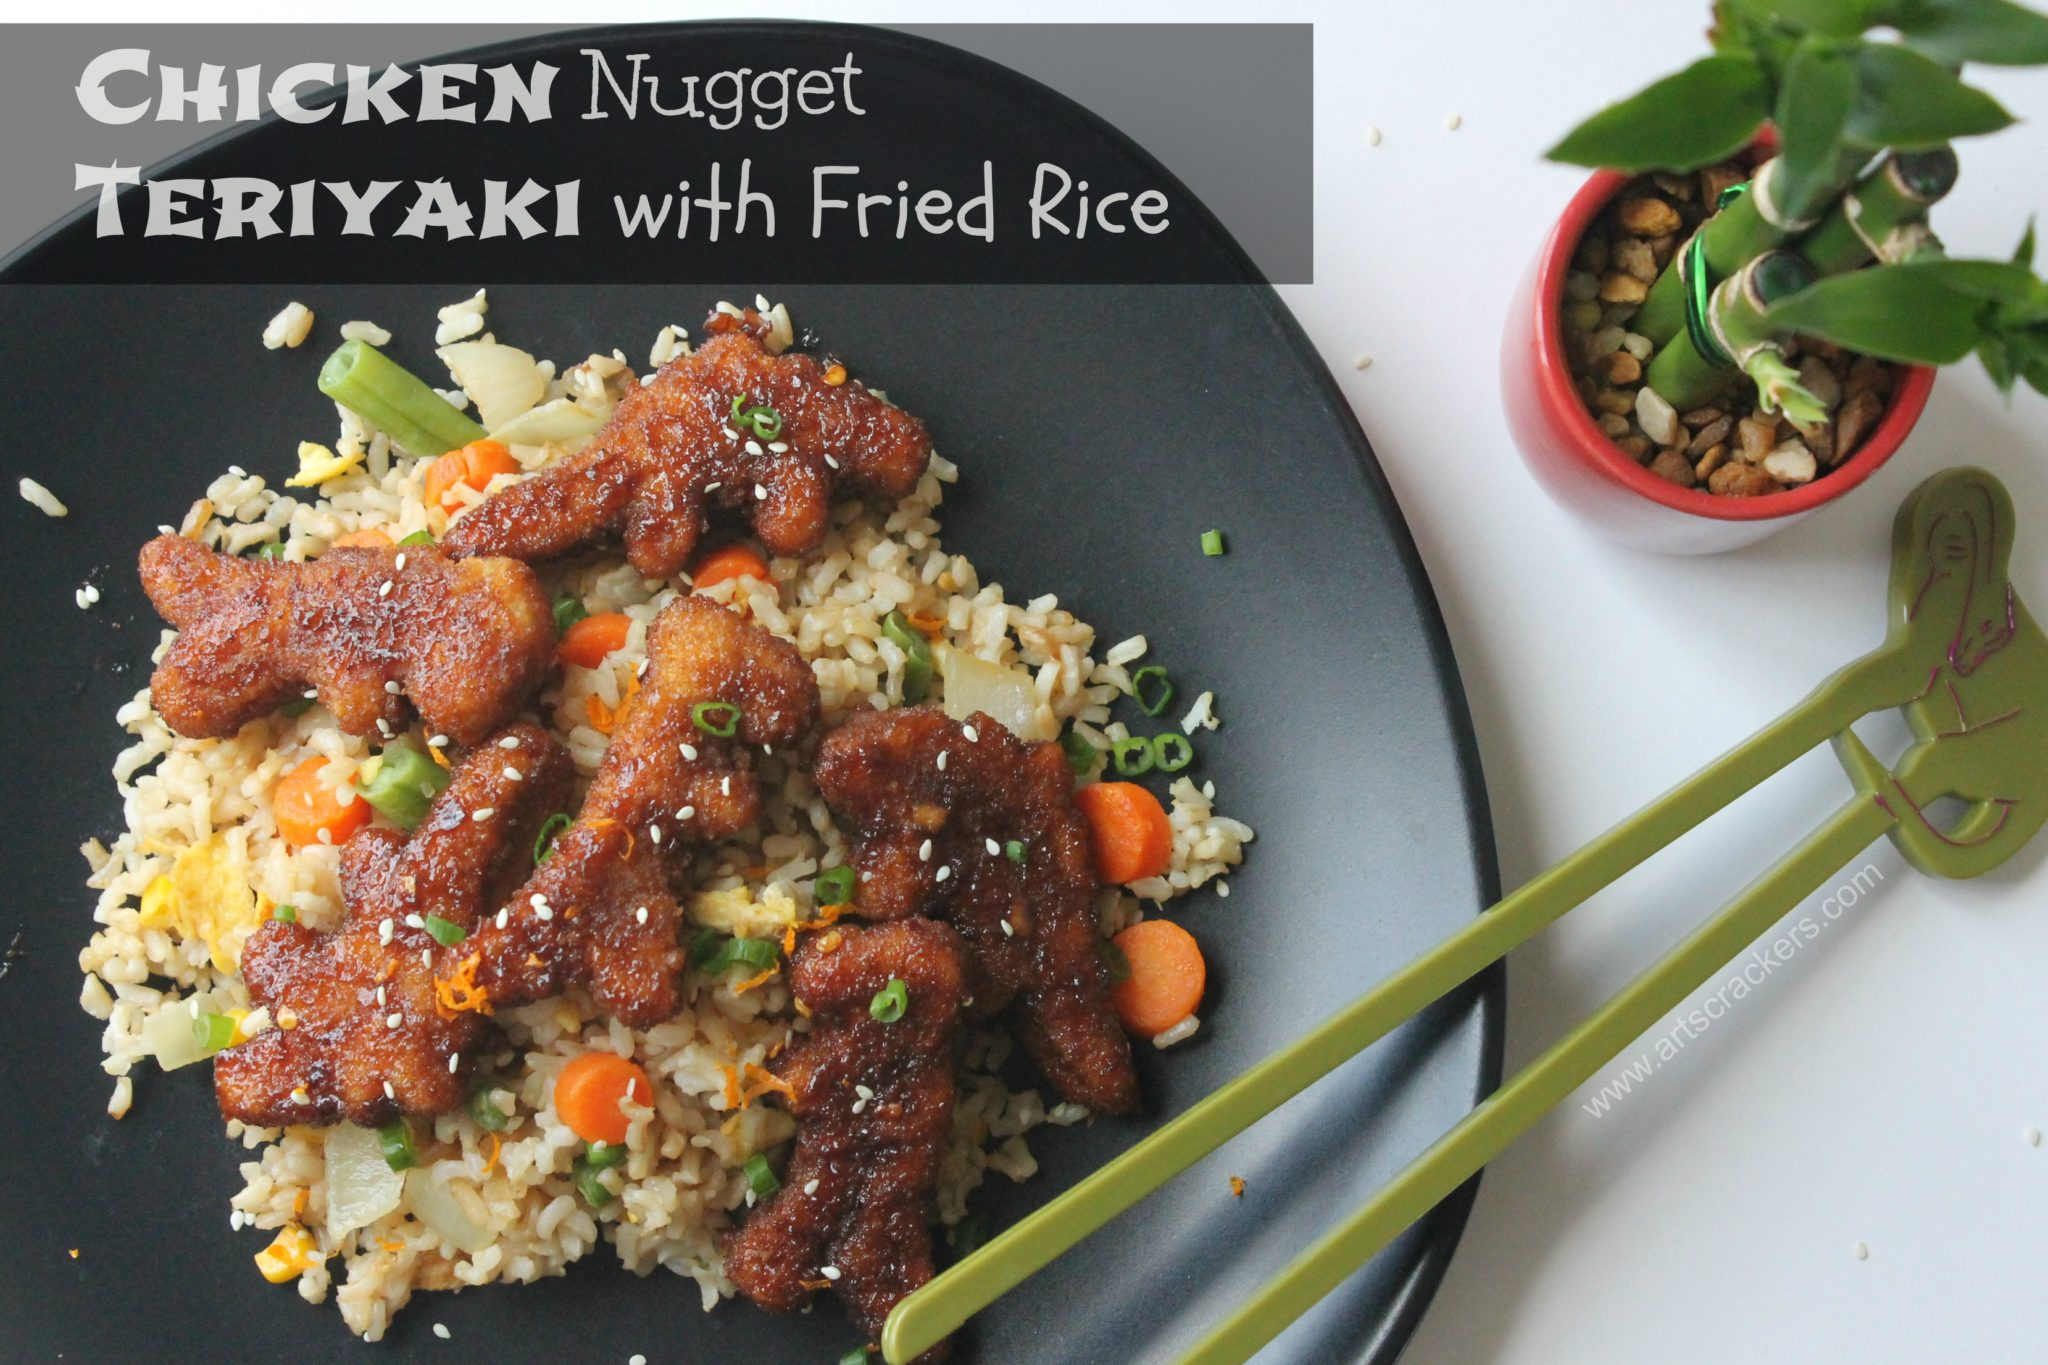 Chicken Nugget Teriyaki With Fried Rice